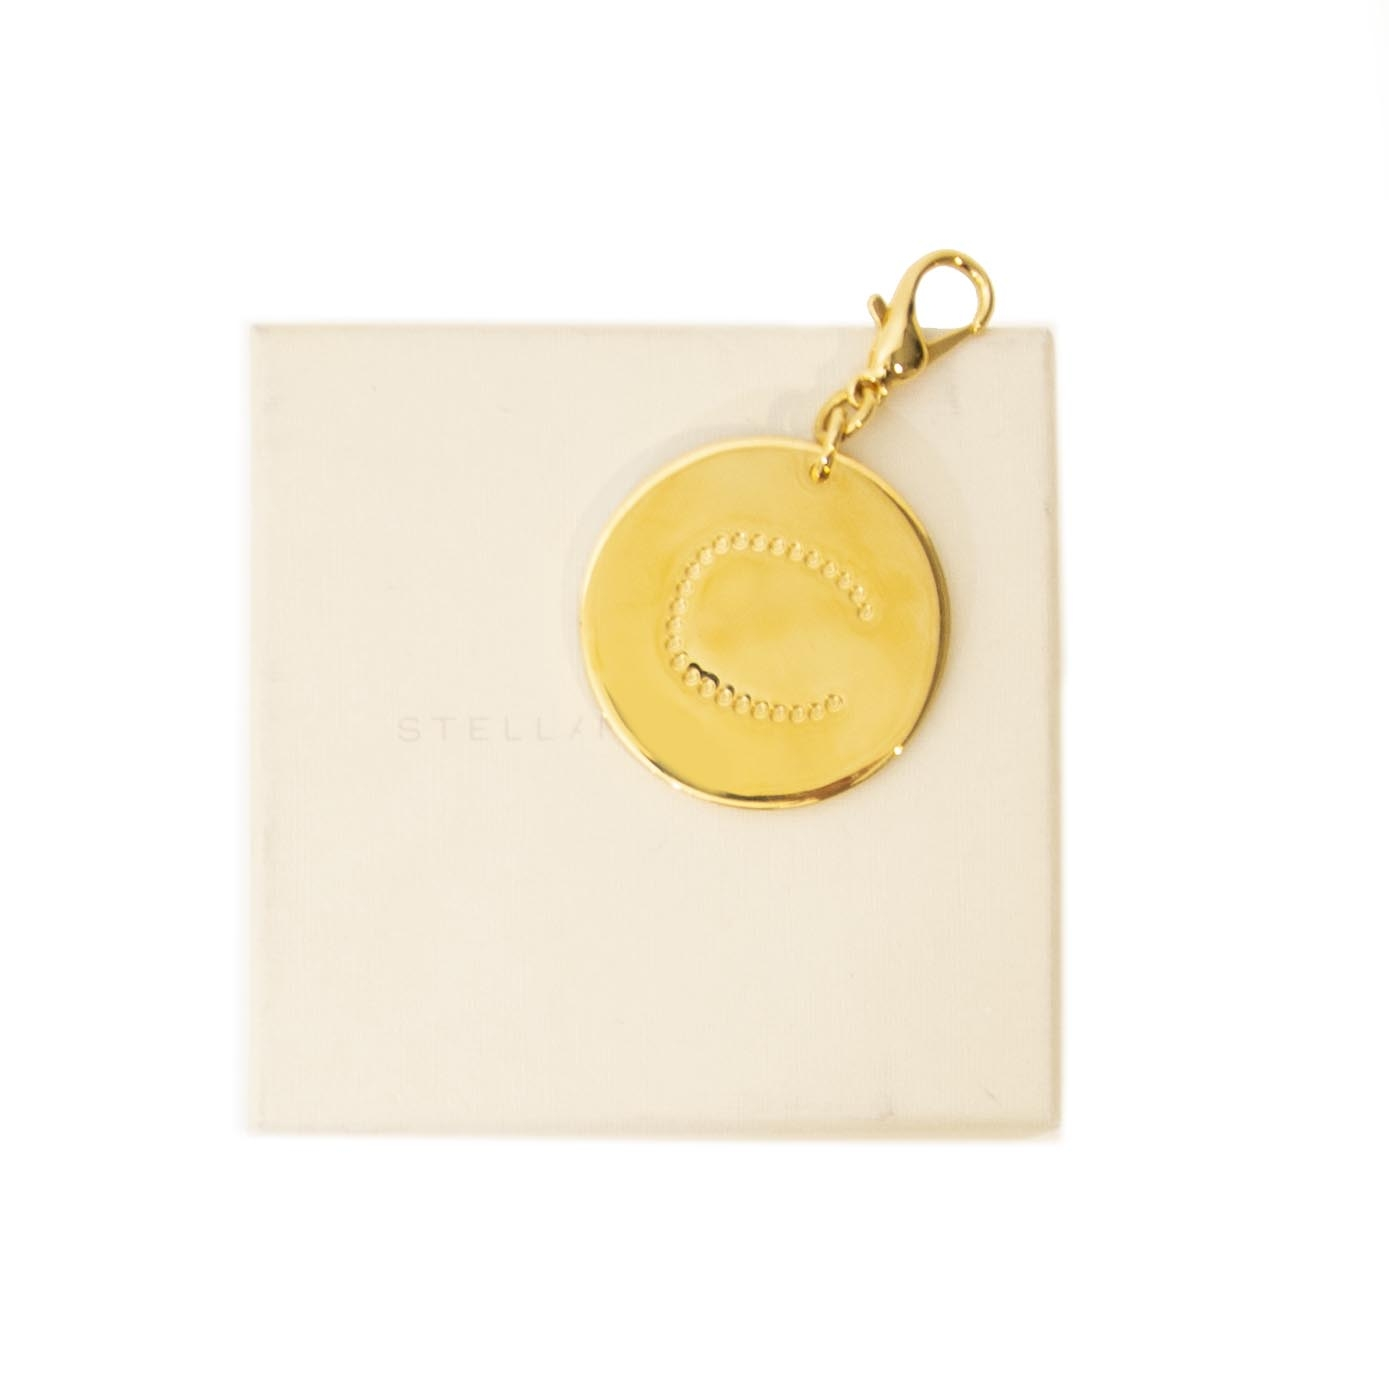 Stella McCartney Gold 'C' Keychain